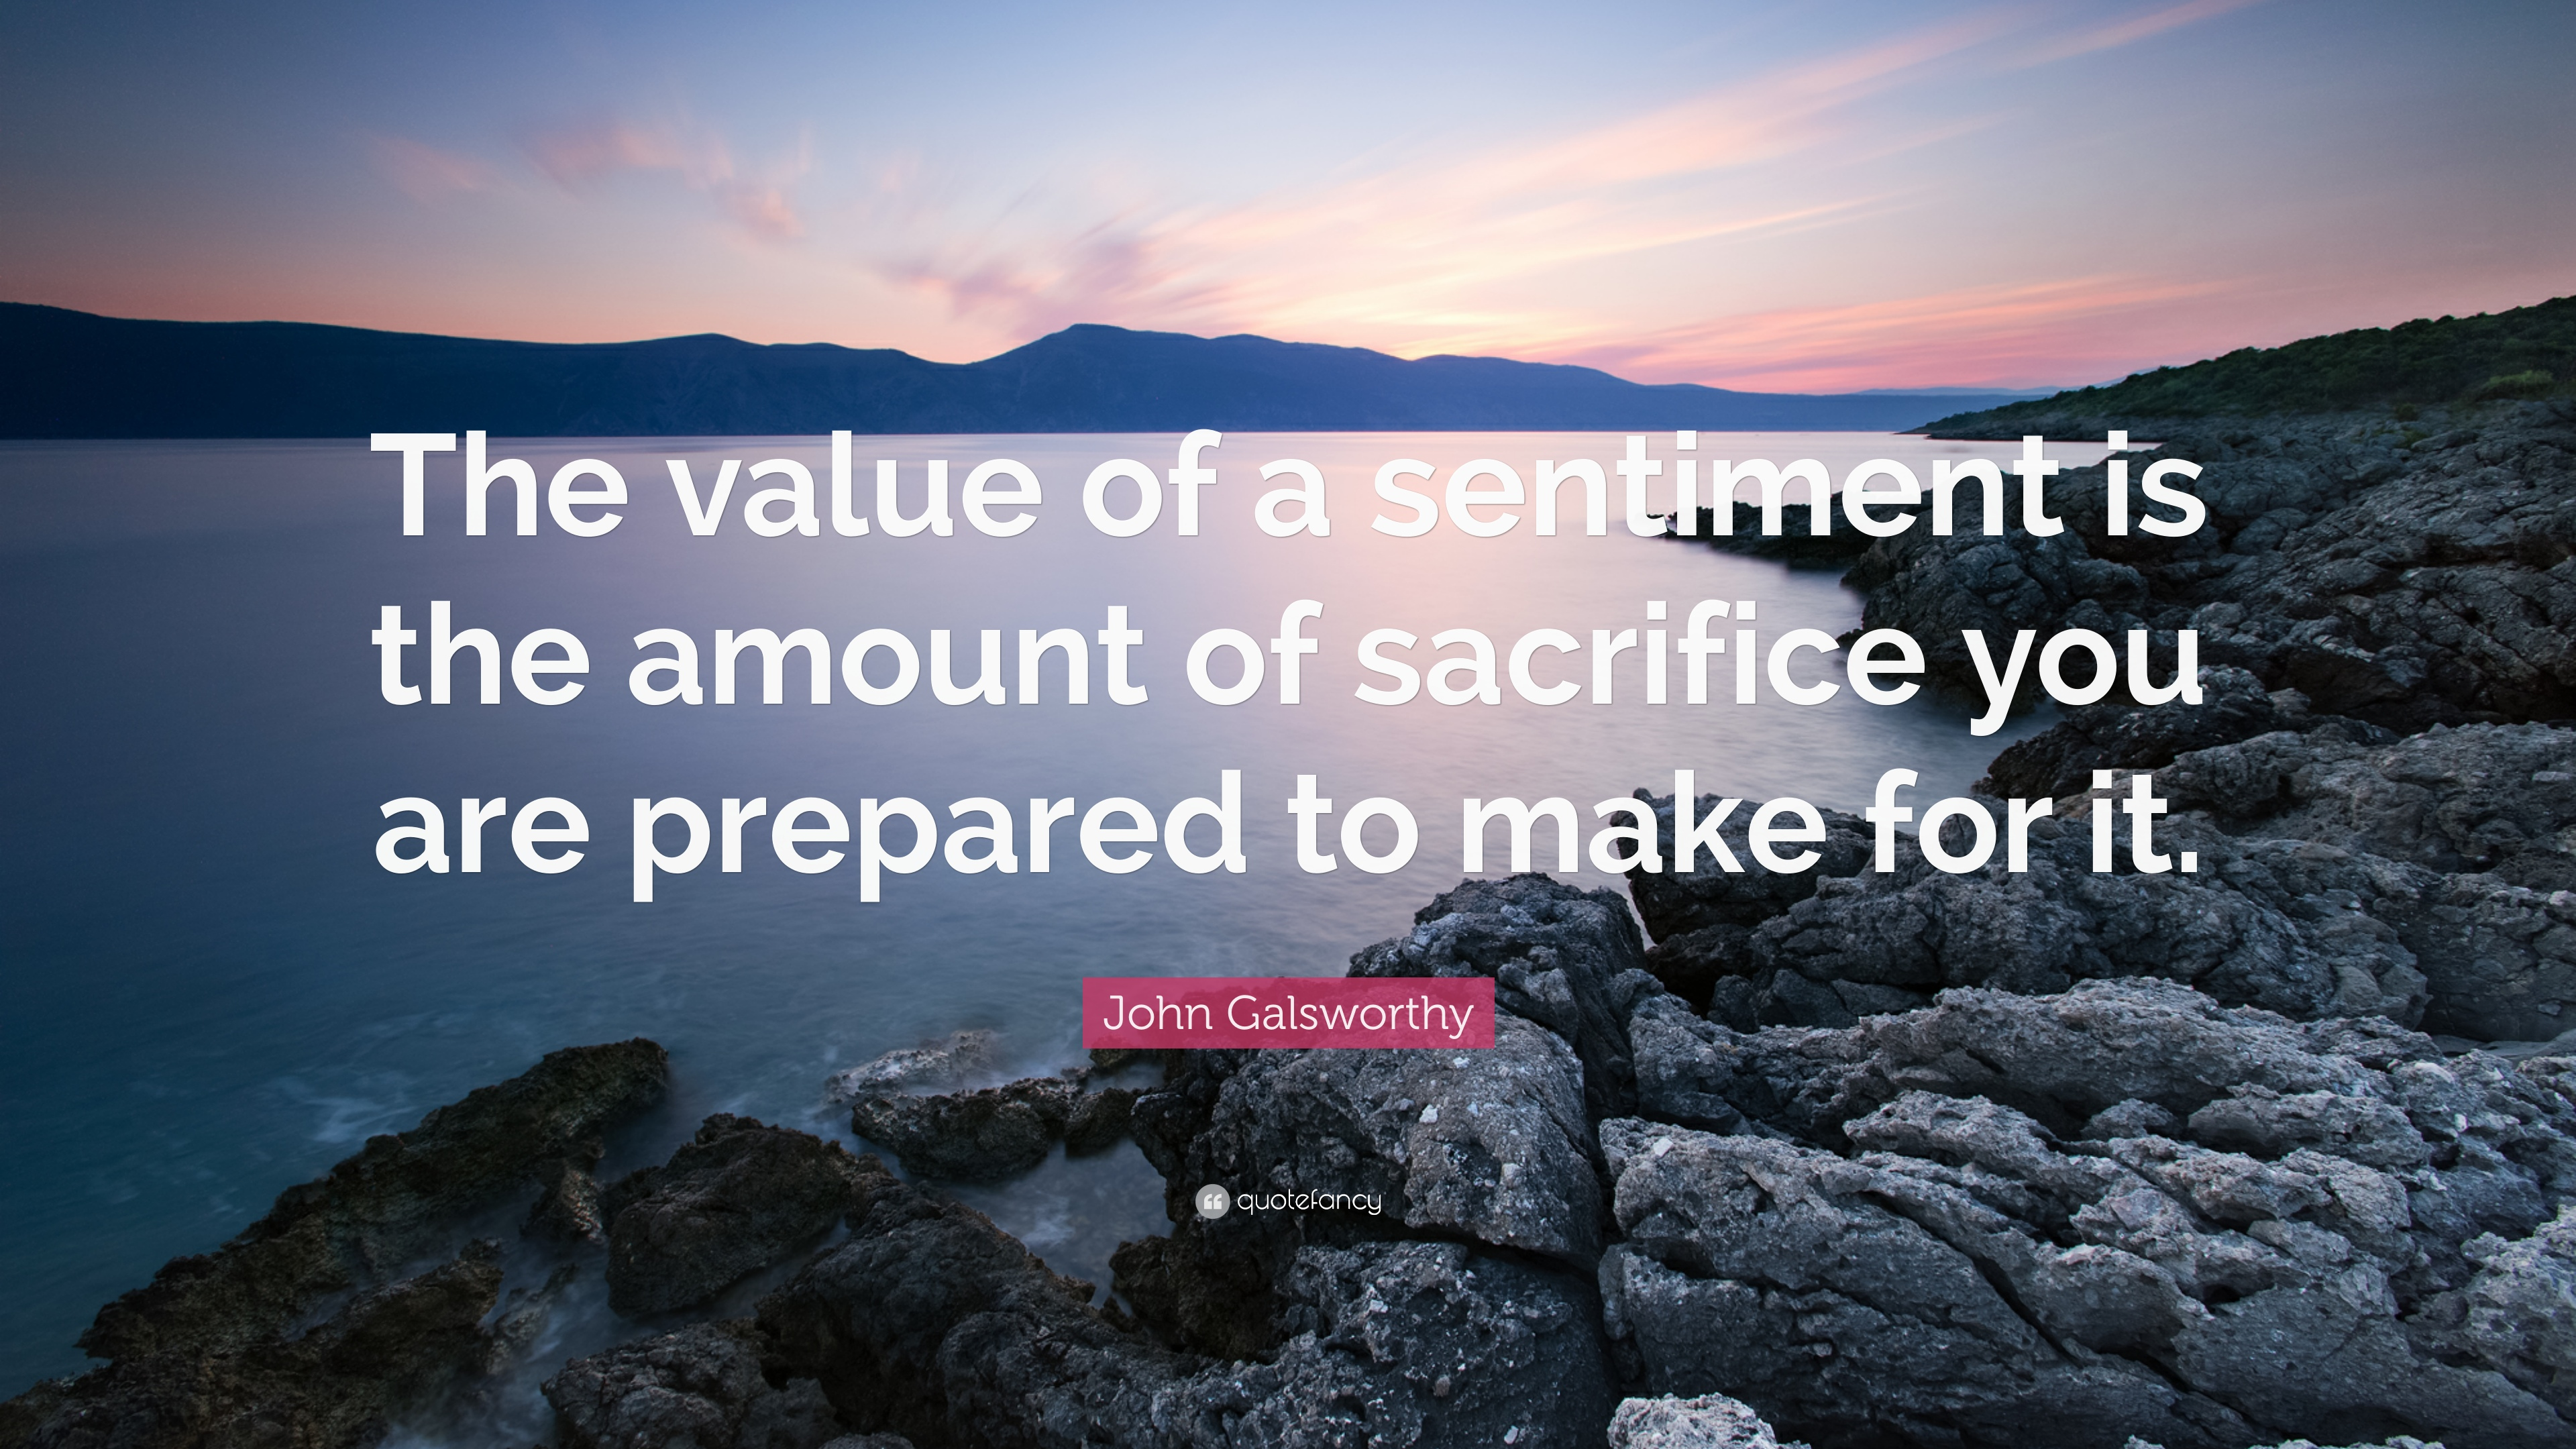 The value in making sacrifices